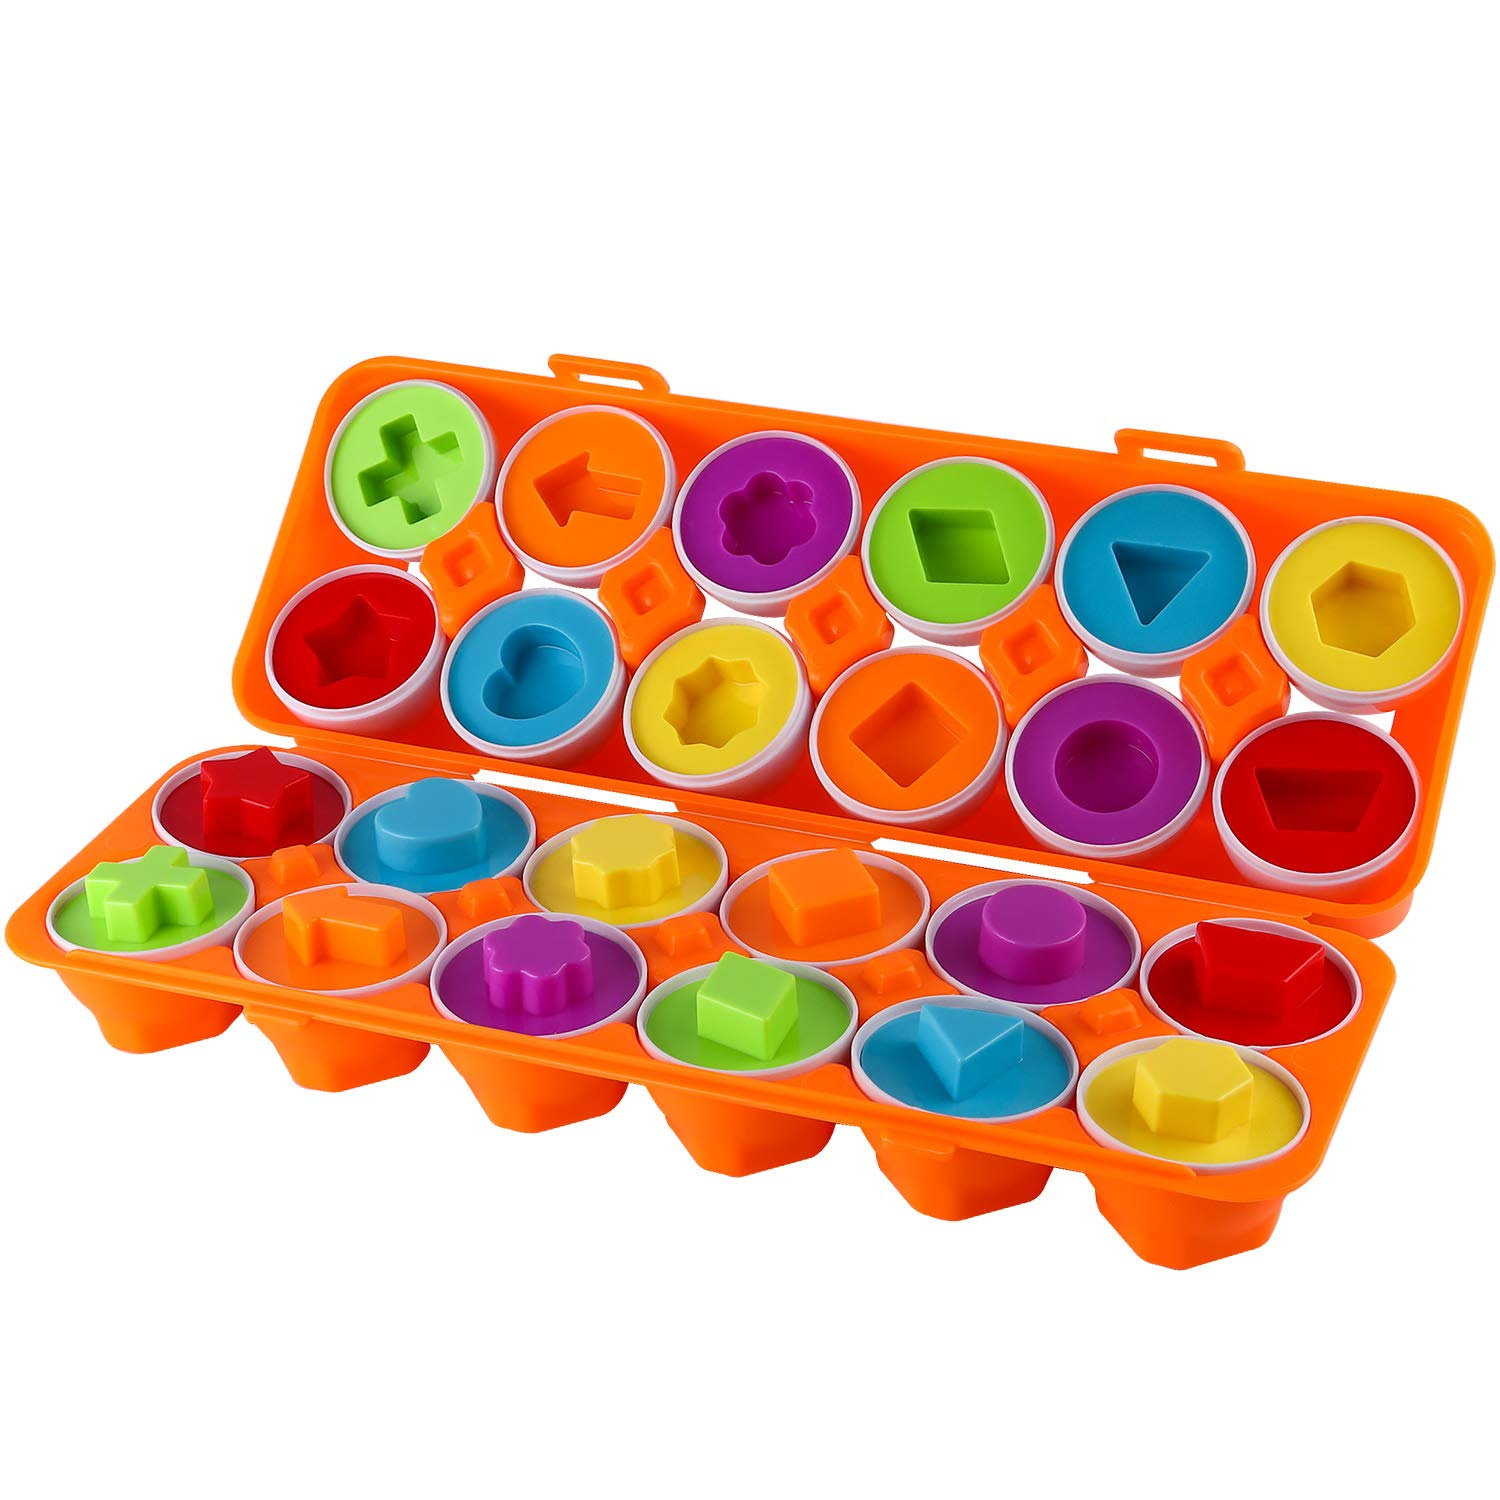 Educational Color Toddler Toys Shapes /& Sorting Recognition Skills Bestwin Color Shapes Matching Egg Set Girls Sorting Puzzle for Boys